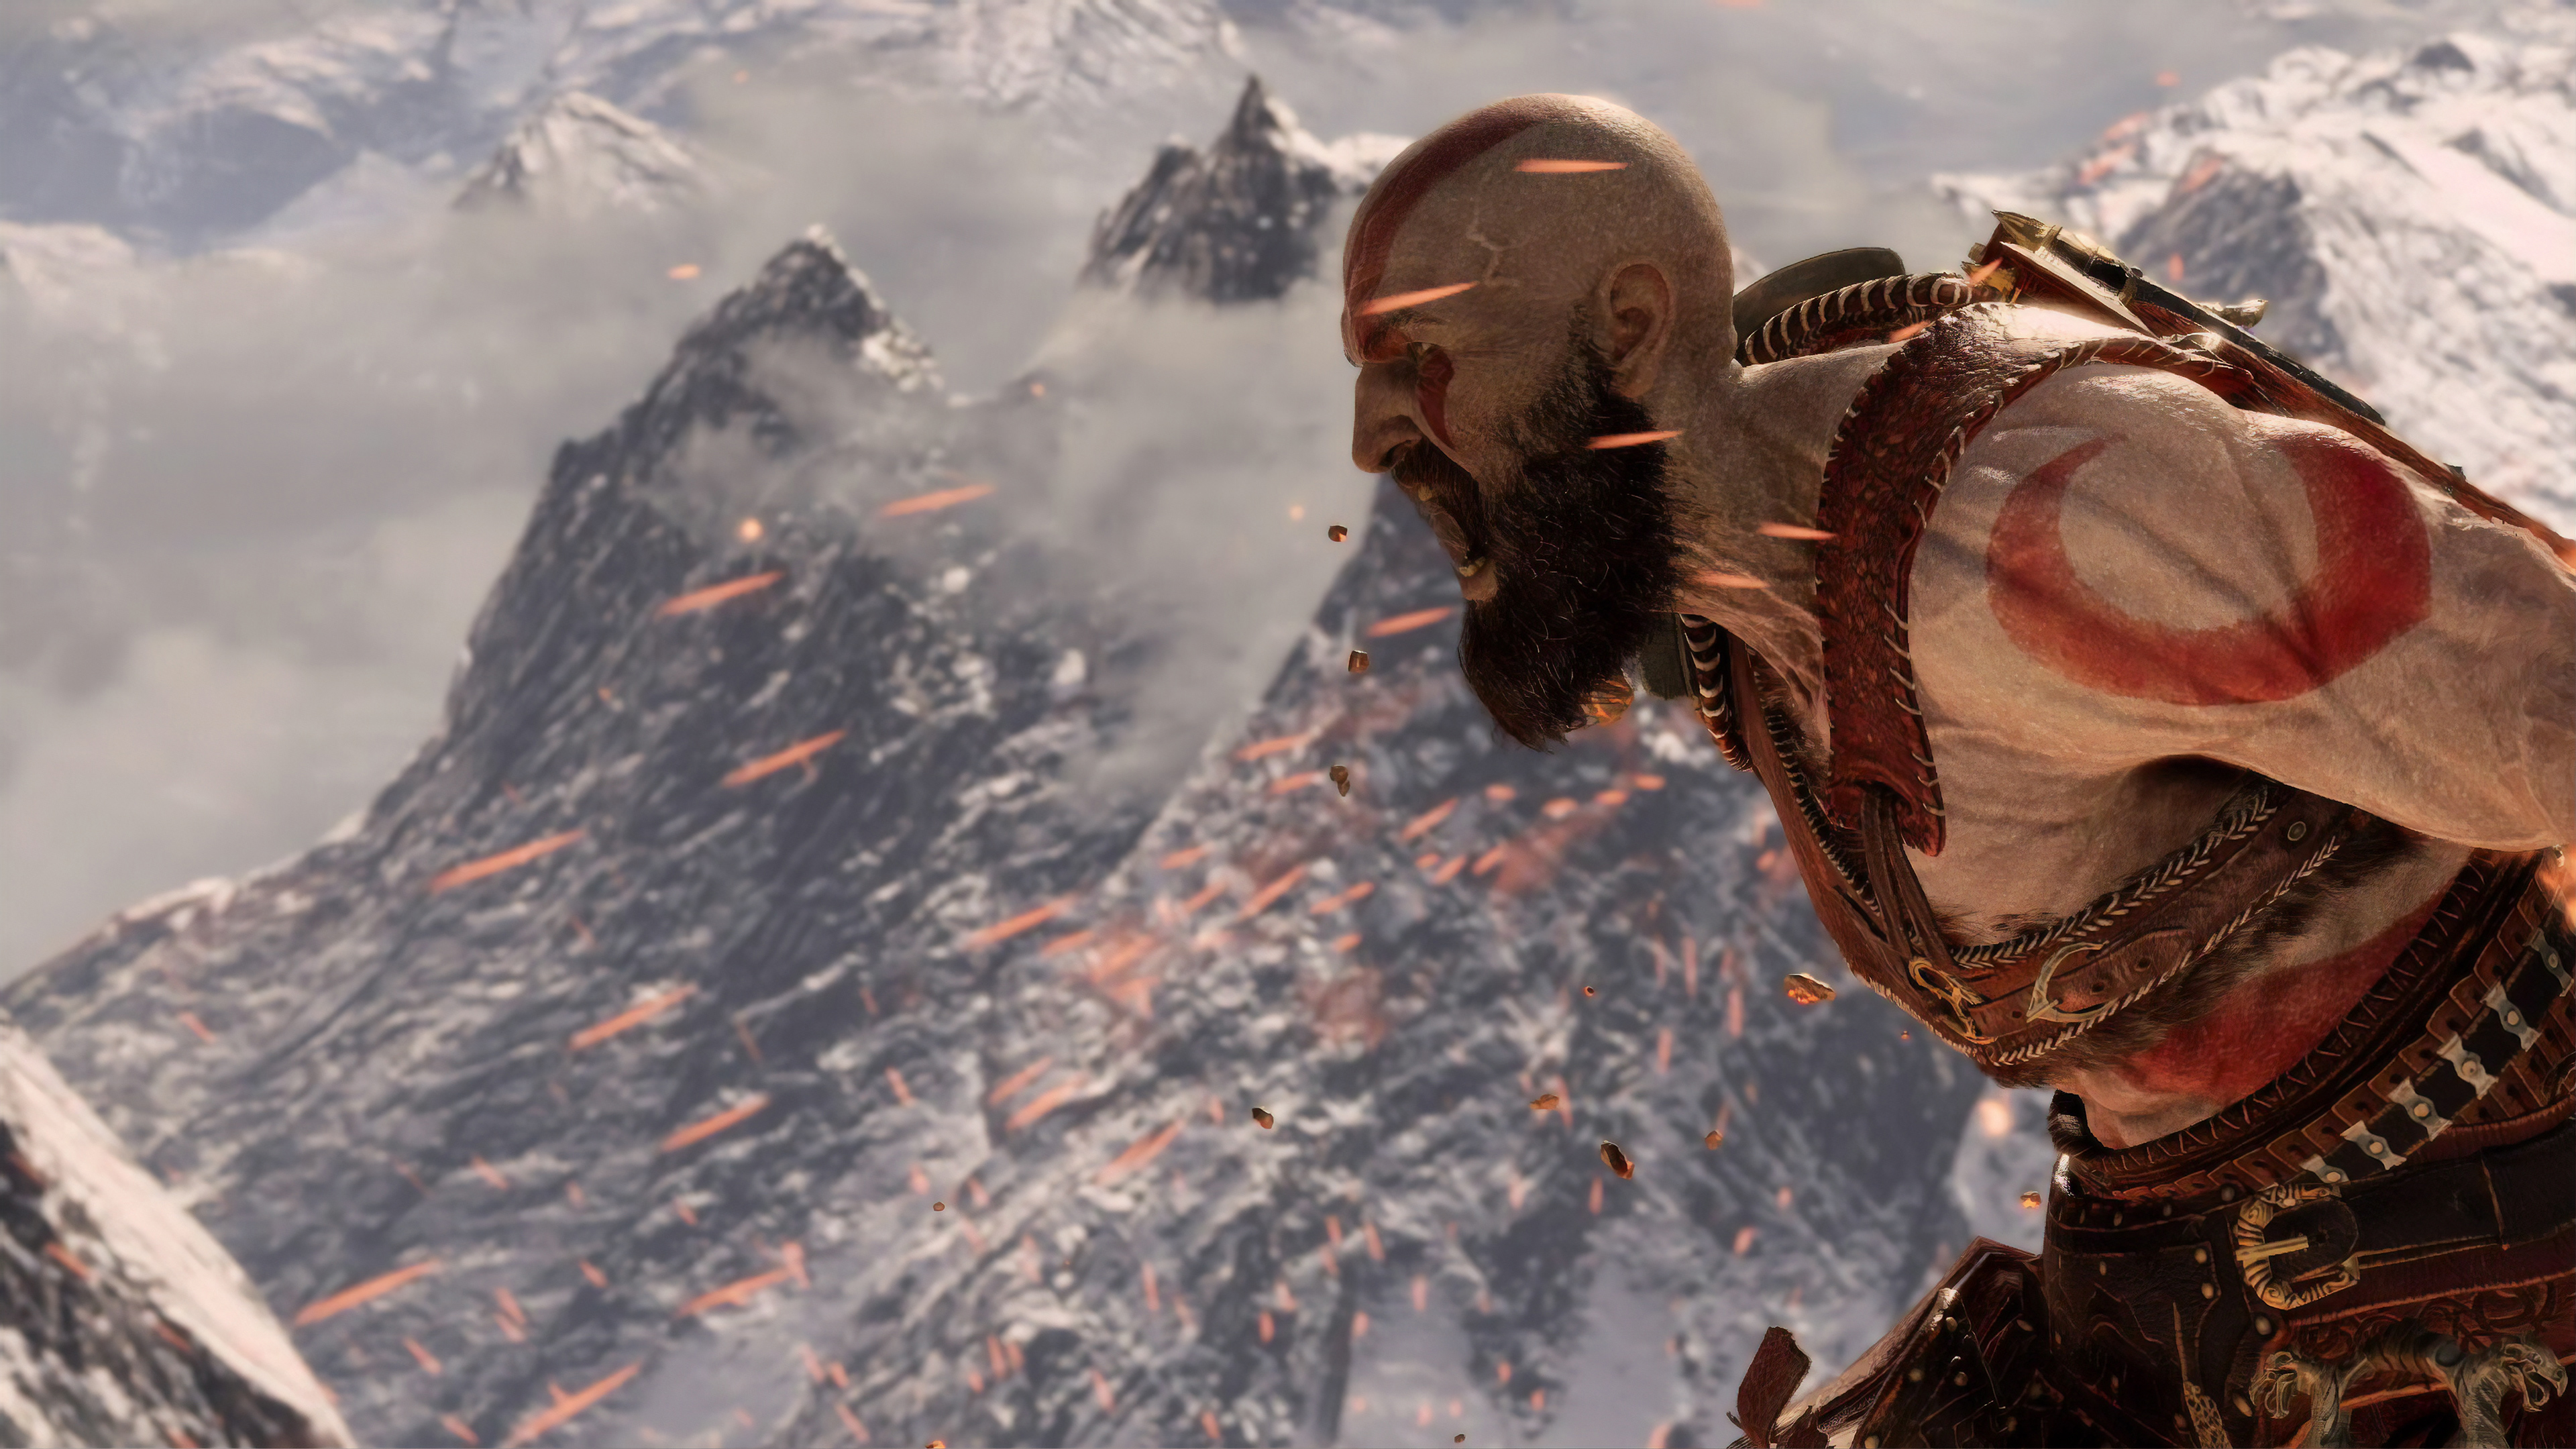 Wallpaper 4k 2019 God Of War 4 2019 Games Wallpapers 4k